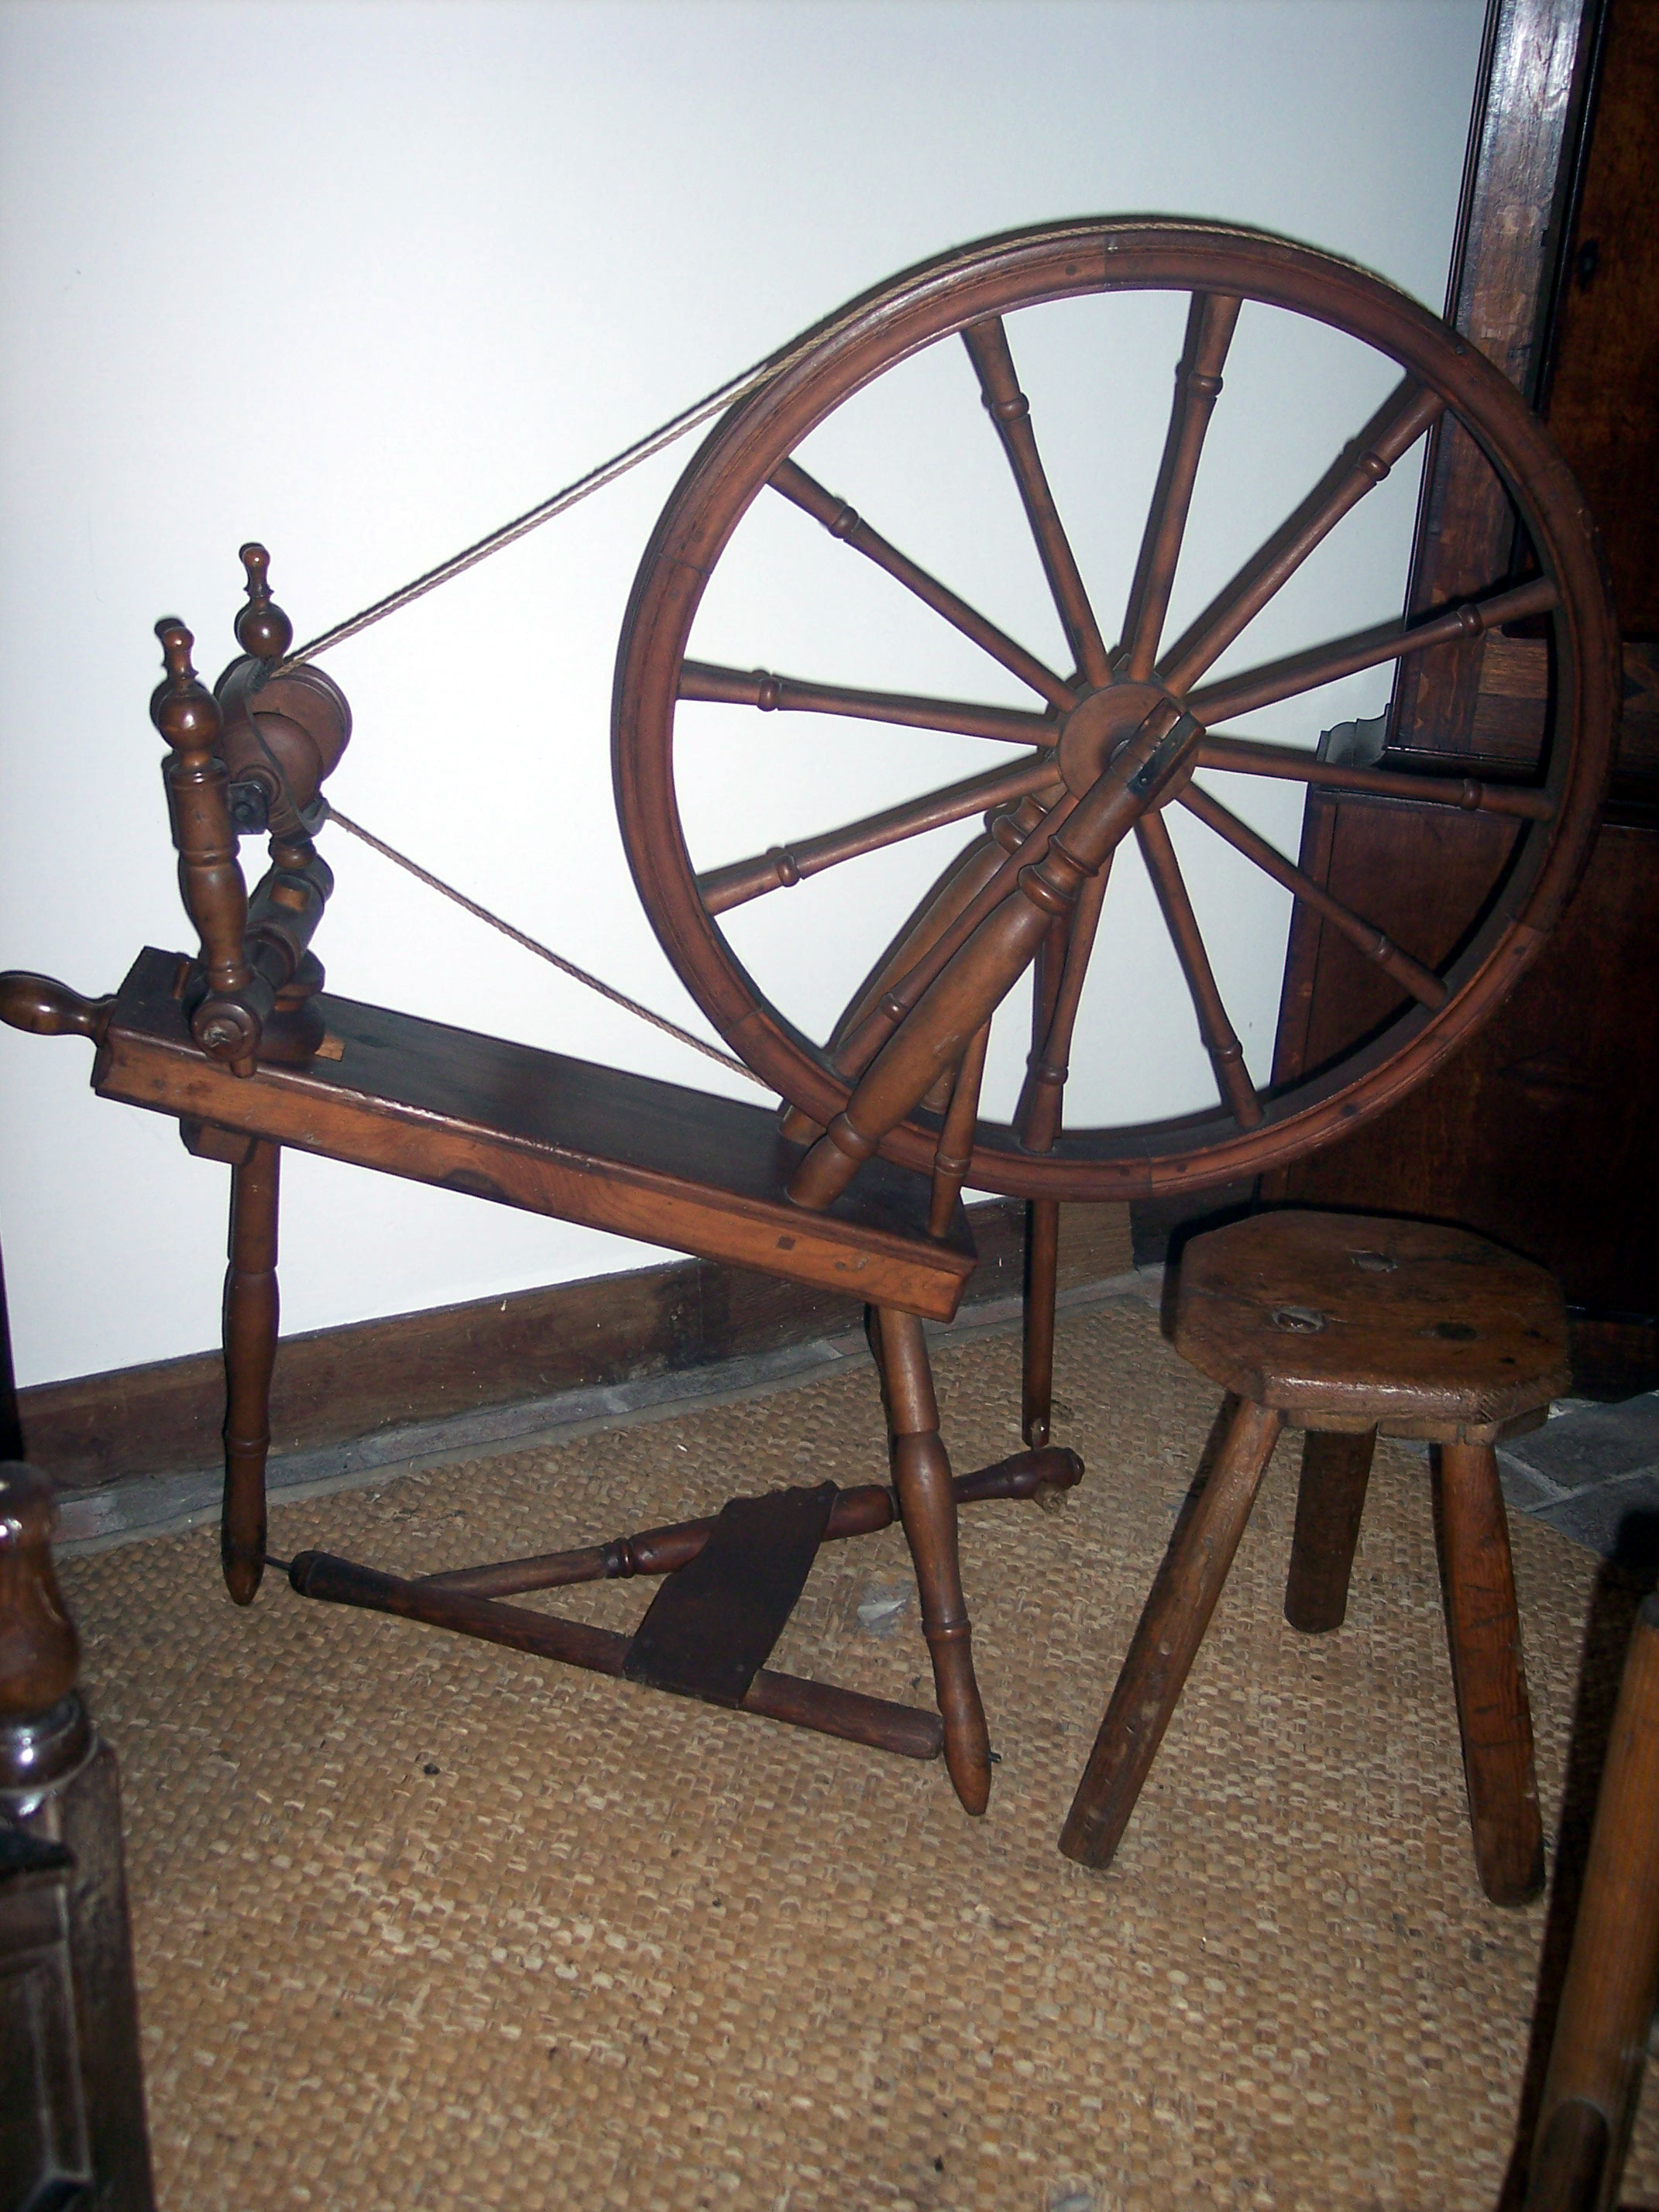 Myths and Legends Gallery Spinning wheel: